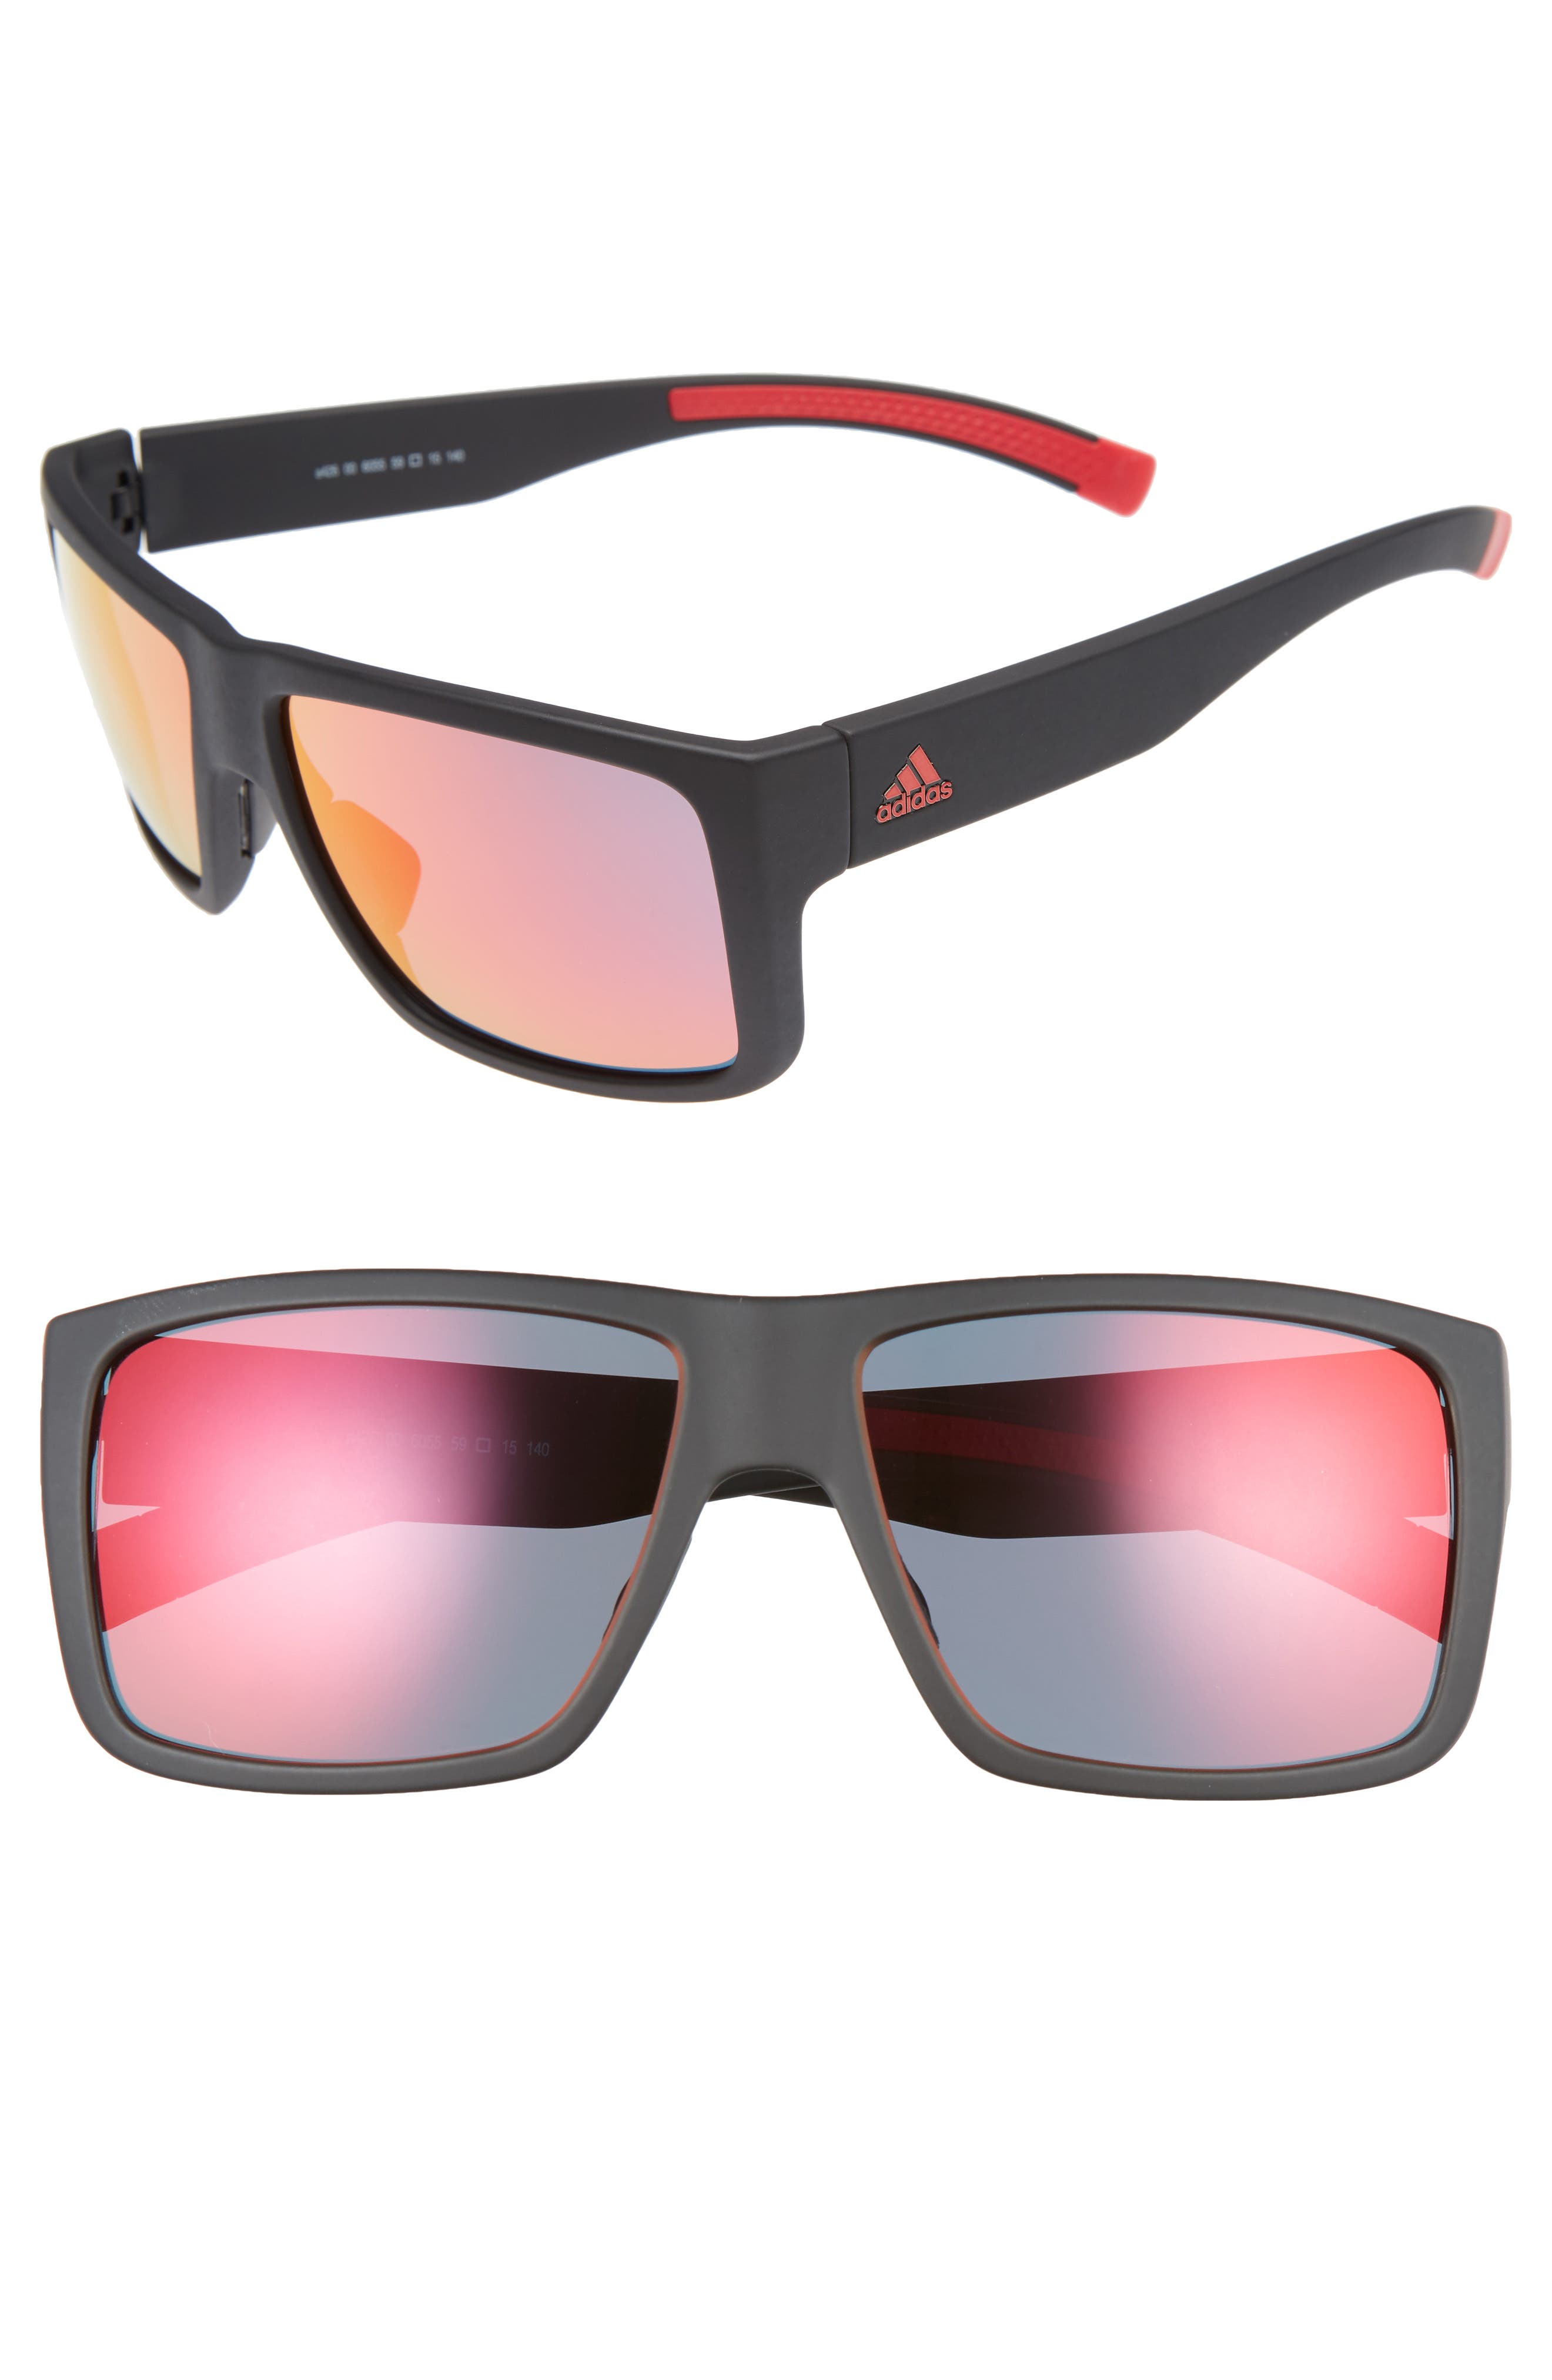 ADIDAS, Matic 59mm Sunglasses, Alternate thumbnail 3, color, BLACK MATTE/ RED MIRROR